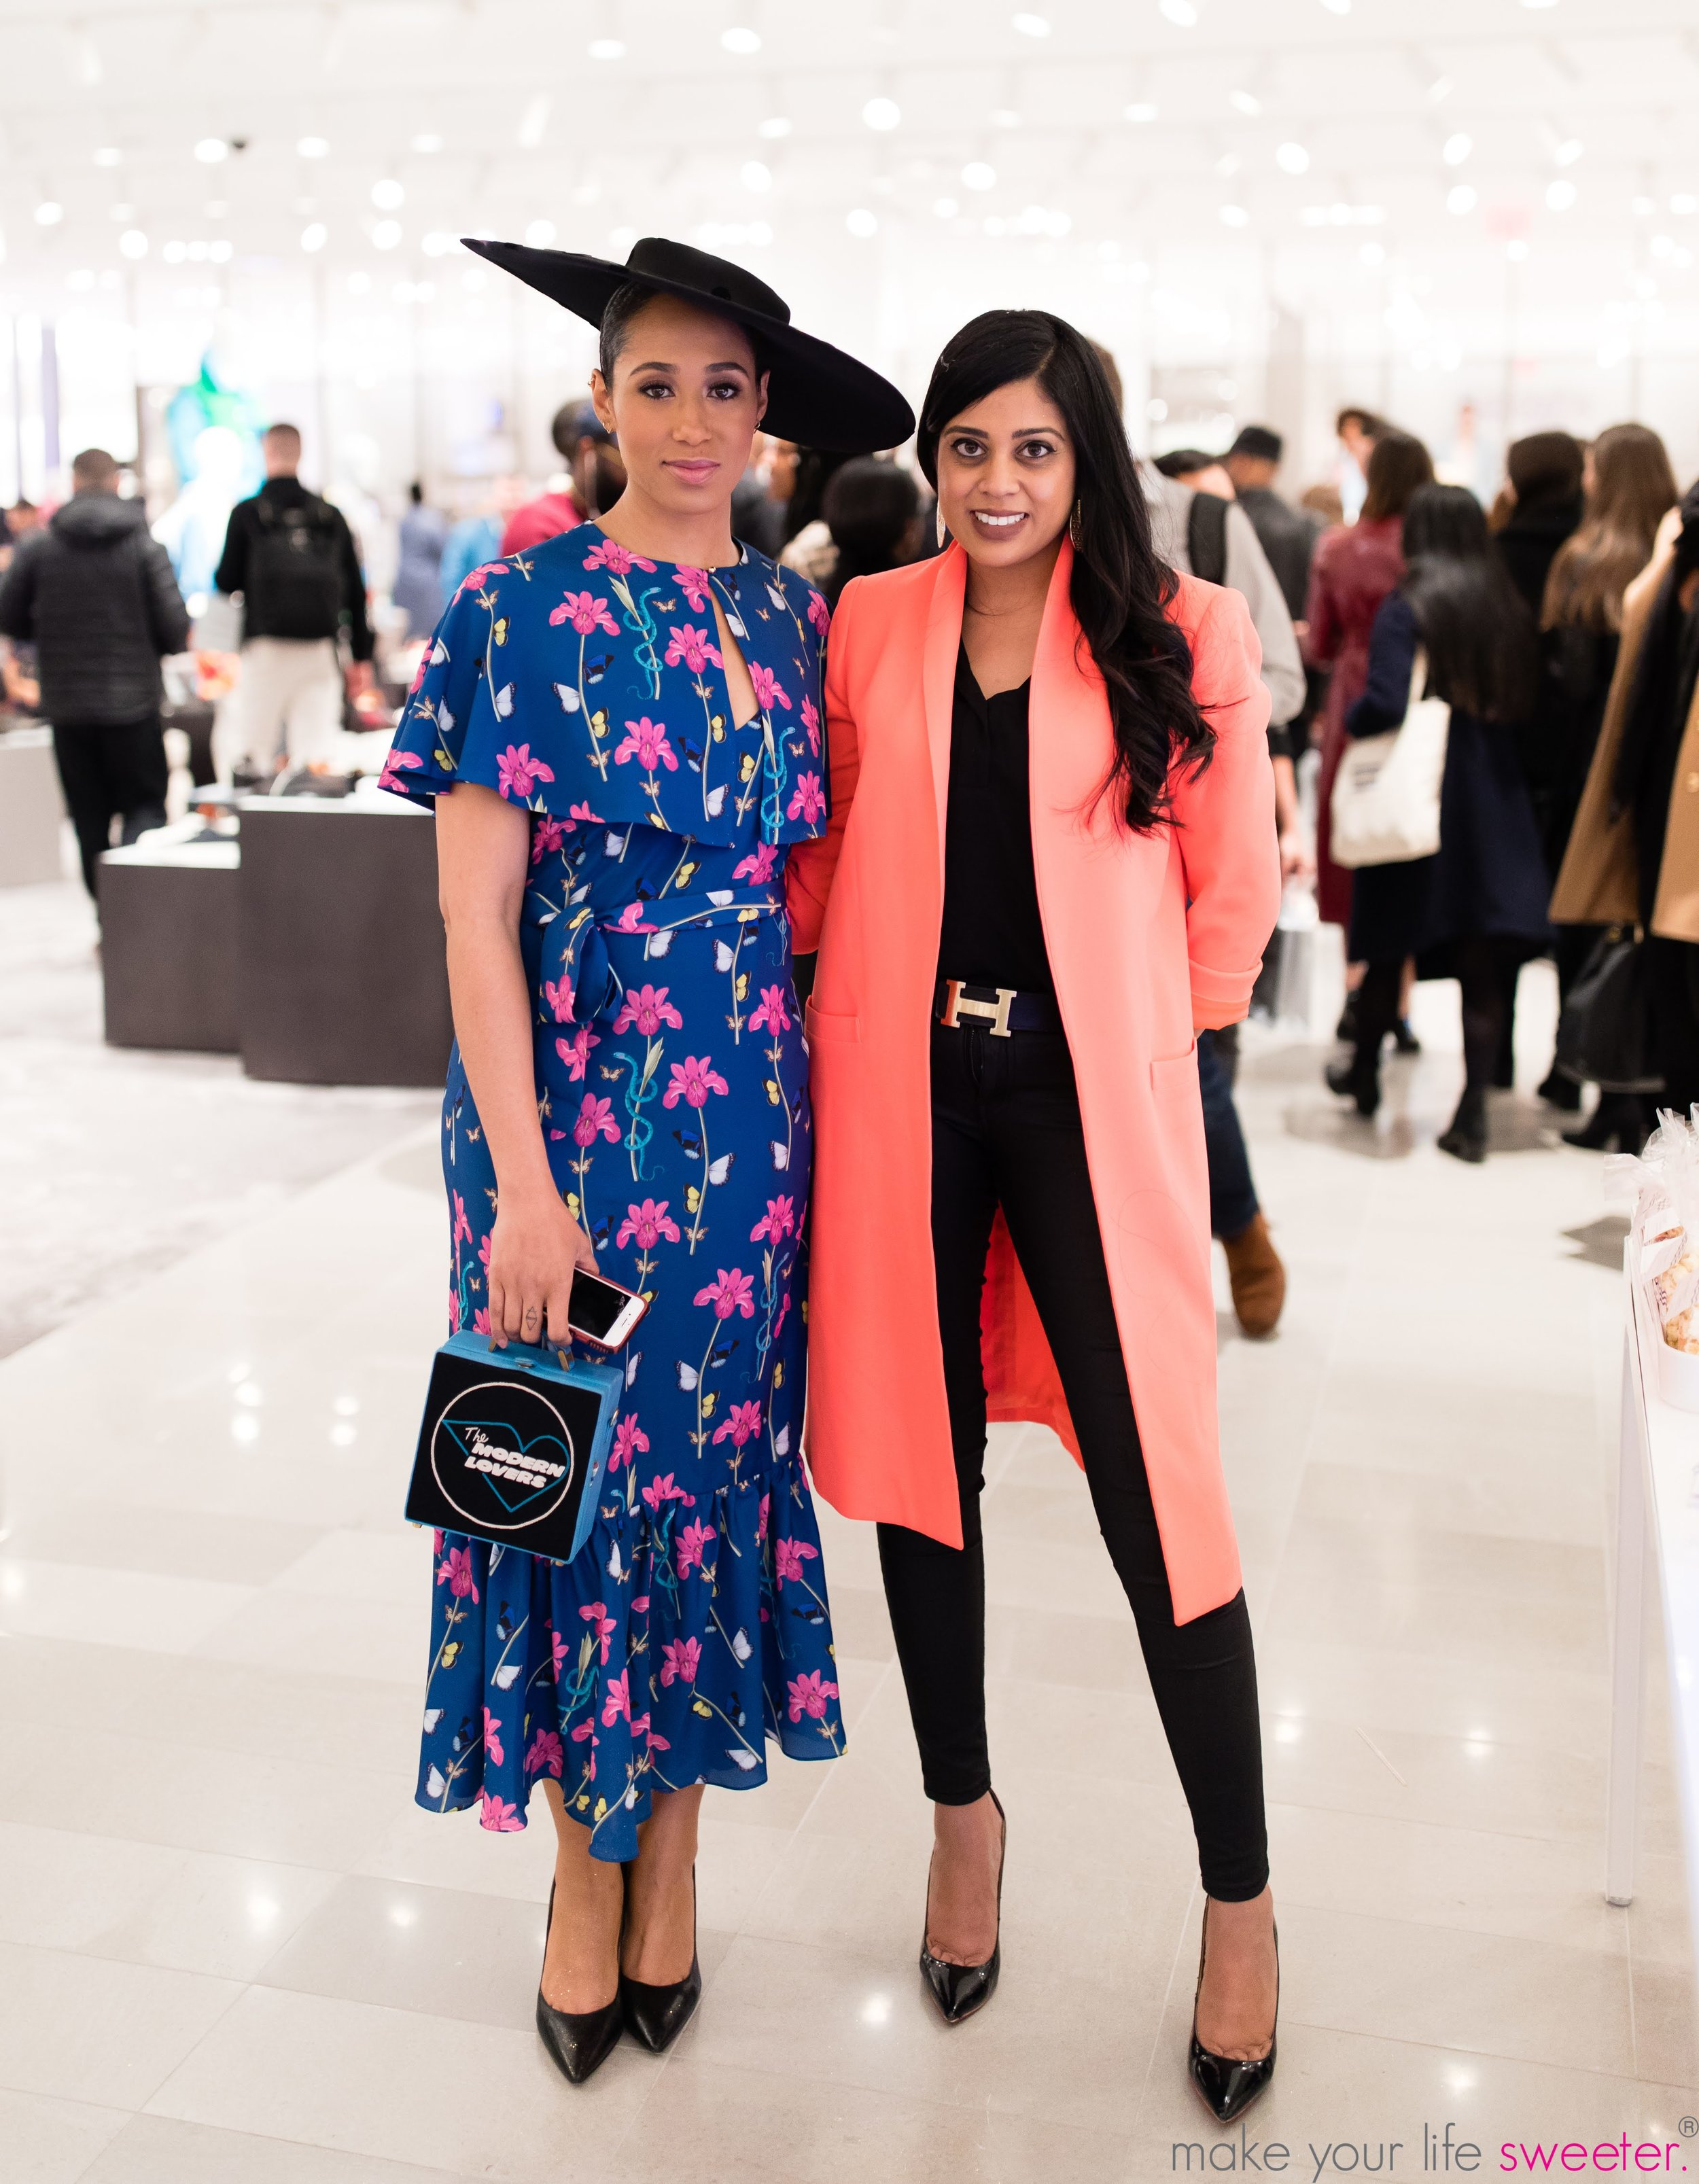 Make Your Life Sweeter Events - Yasmeen Tadia and Margo Bingham: Fluffpop Artisanal Cotton Candy Live Spin - Neiman Marcus Hudson Yards